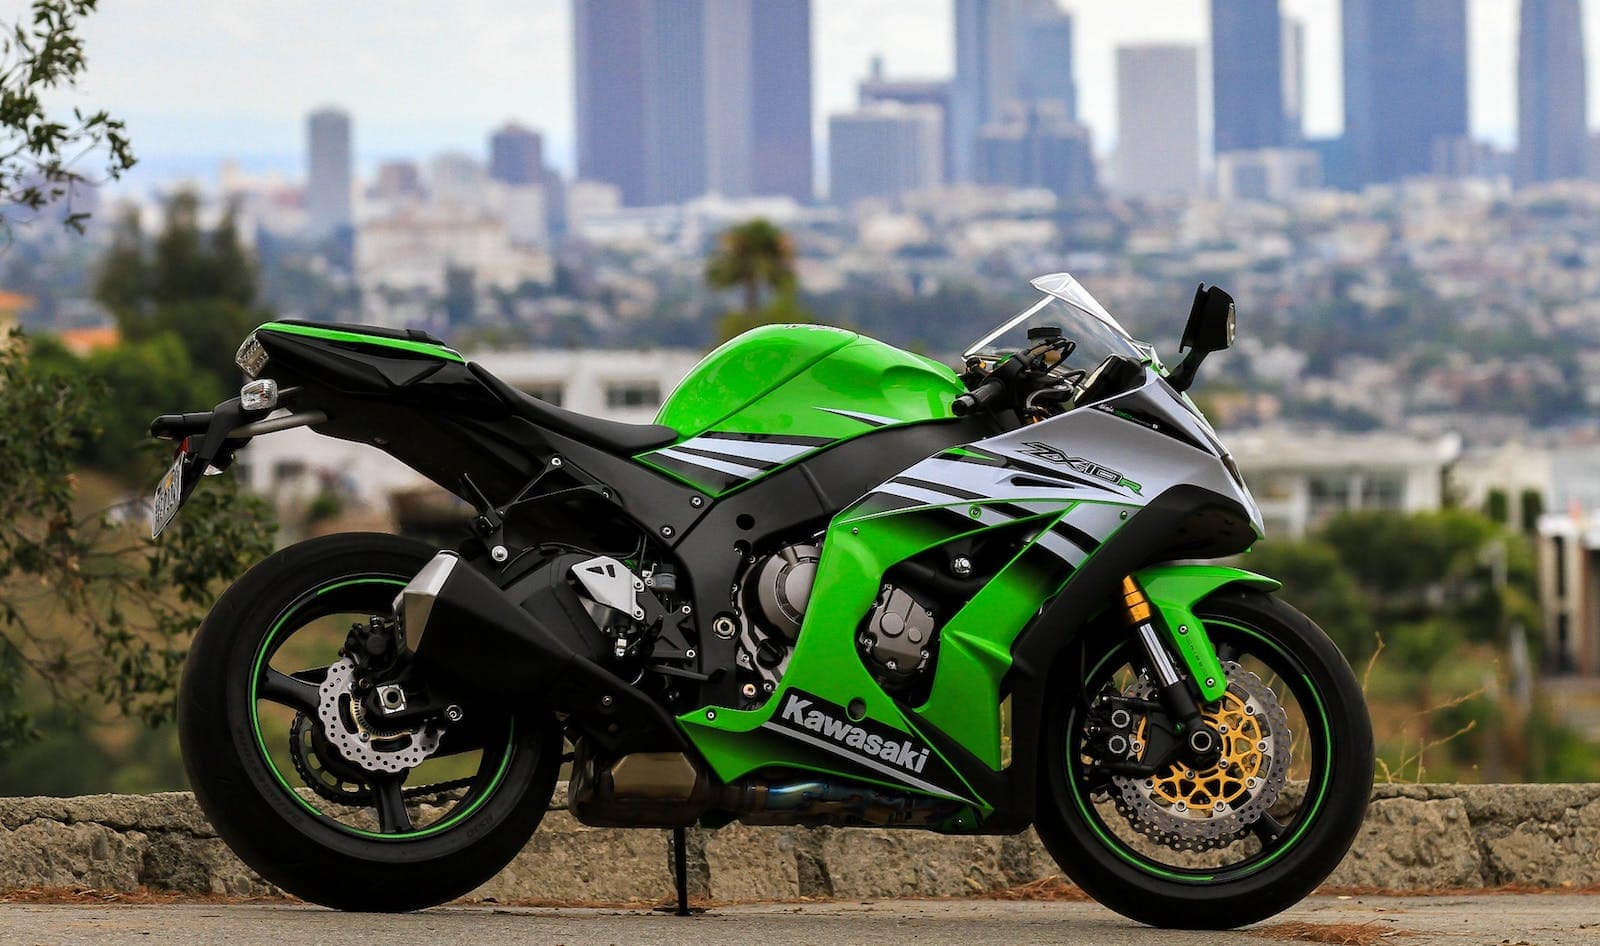 Kawasaki ZX-10R green motorcycle.